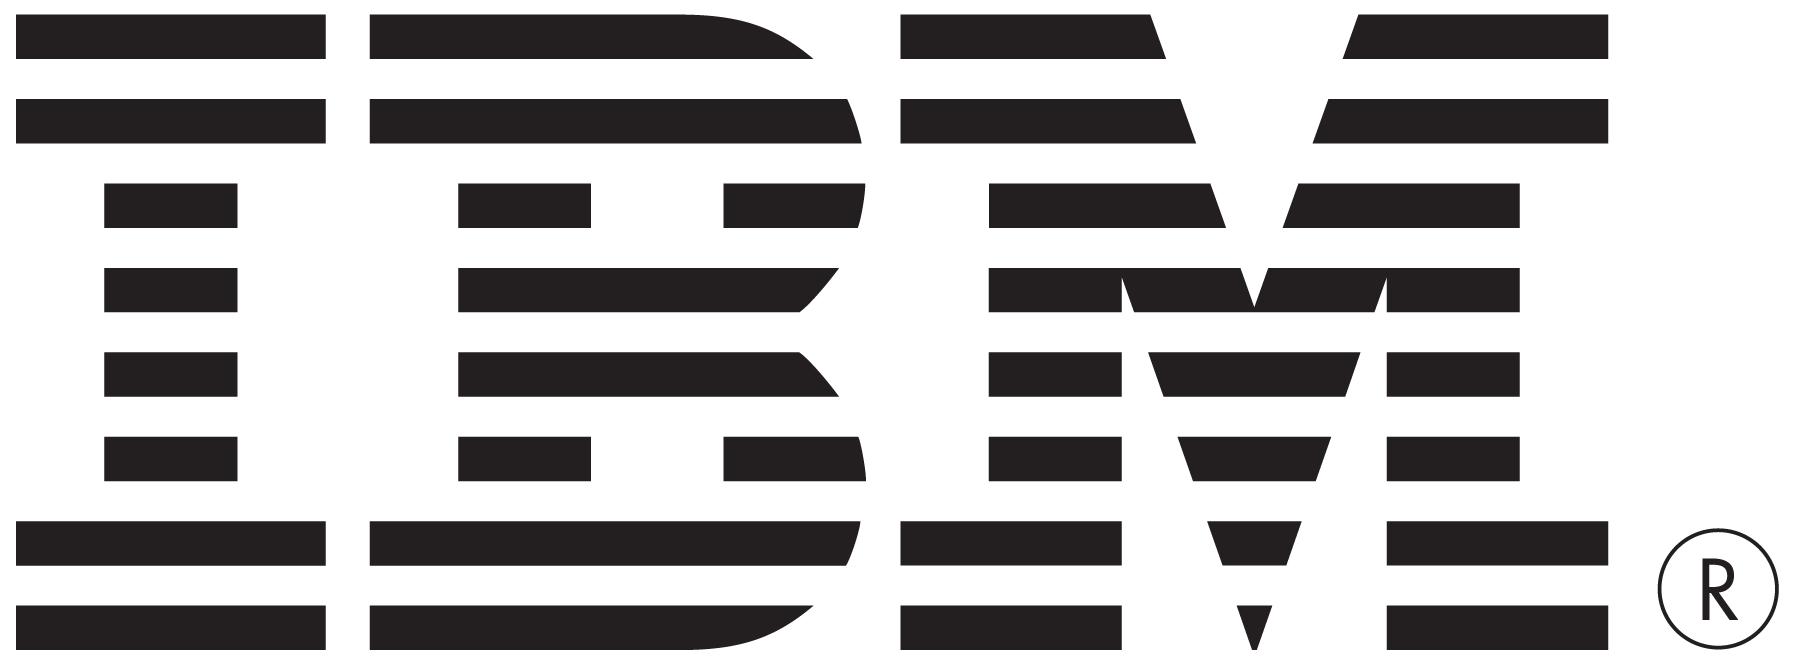 Information Ibm Service Computer Logo Security PNG Image